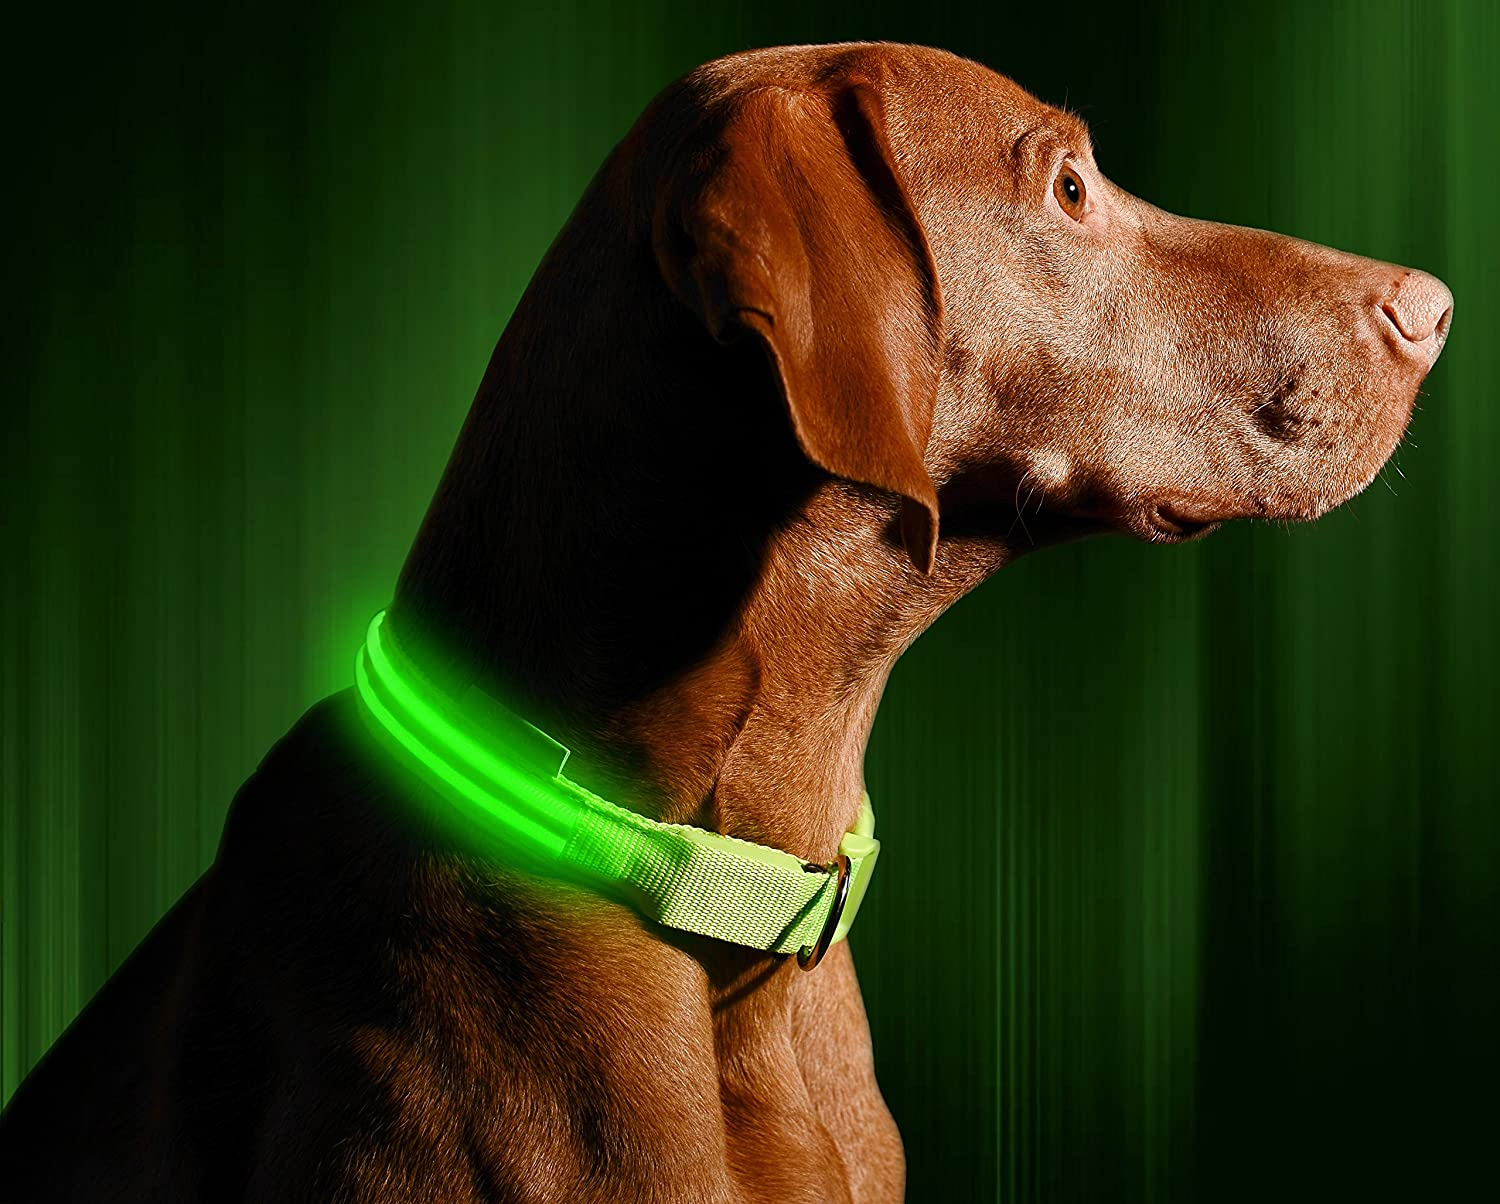 Illumiseen LED Dog Collar - USB Rechargeable - Available in 6 Colors on